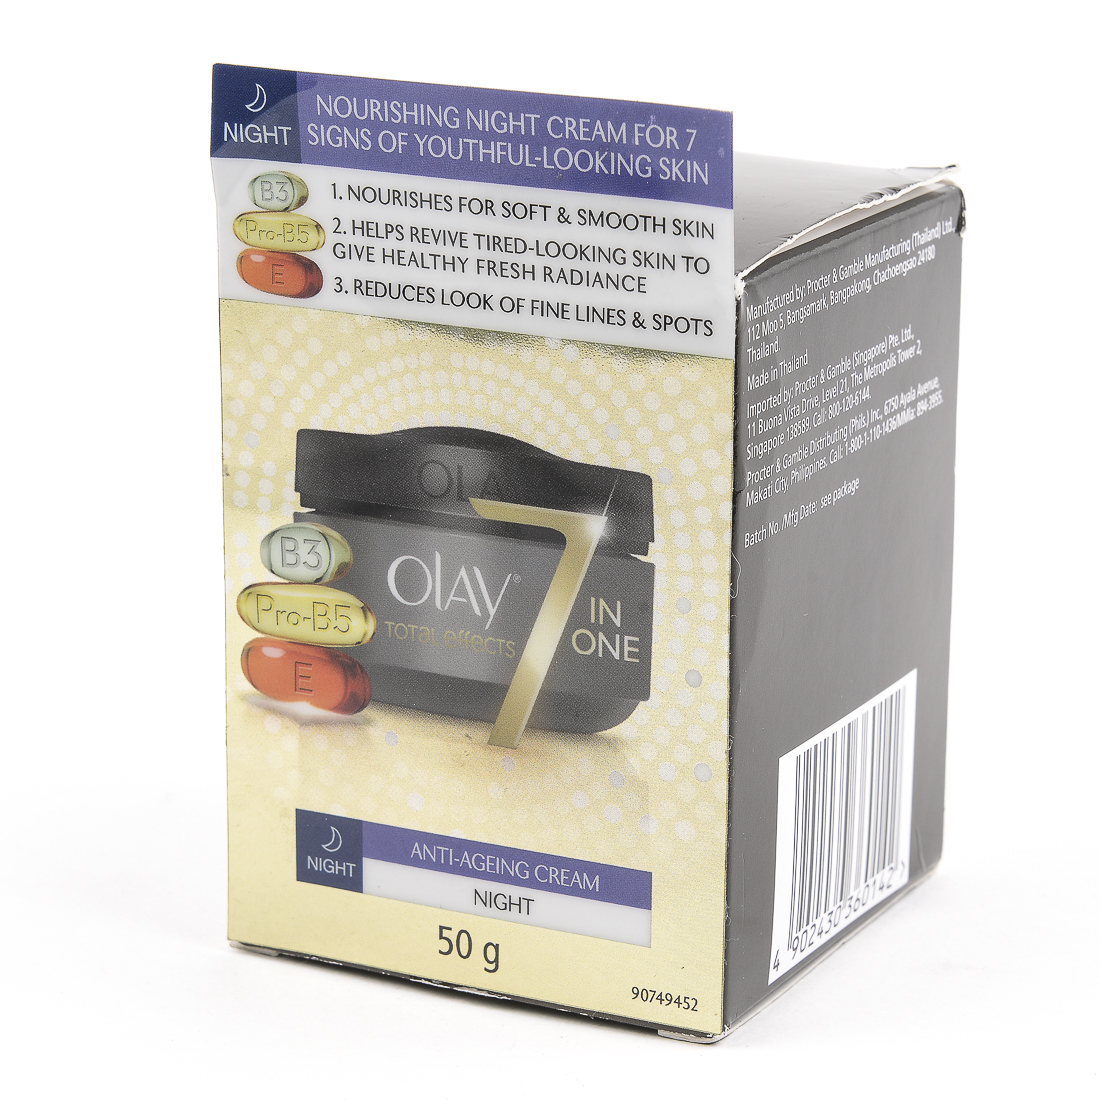 Philippines Olay Te Anti Ageing Night Crm 50g Lowest Prices In The Total Effects 7 One Cream 50gr